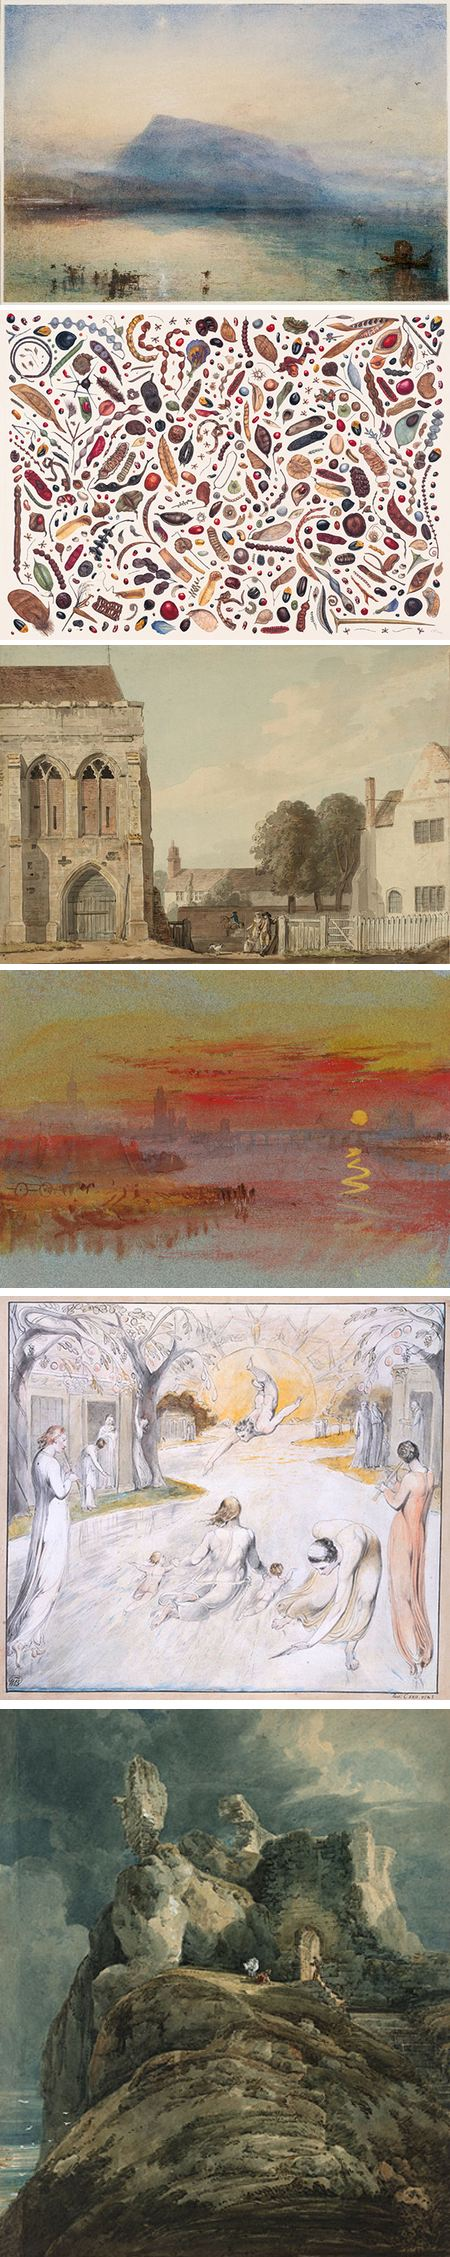 Watercolour at the Tate Britain: JMW Turner, Rachael Pedder-Smith, Paul Sandby, JMW Turner, William Blake, Thomas Girtin